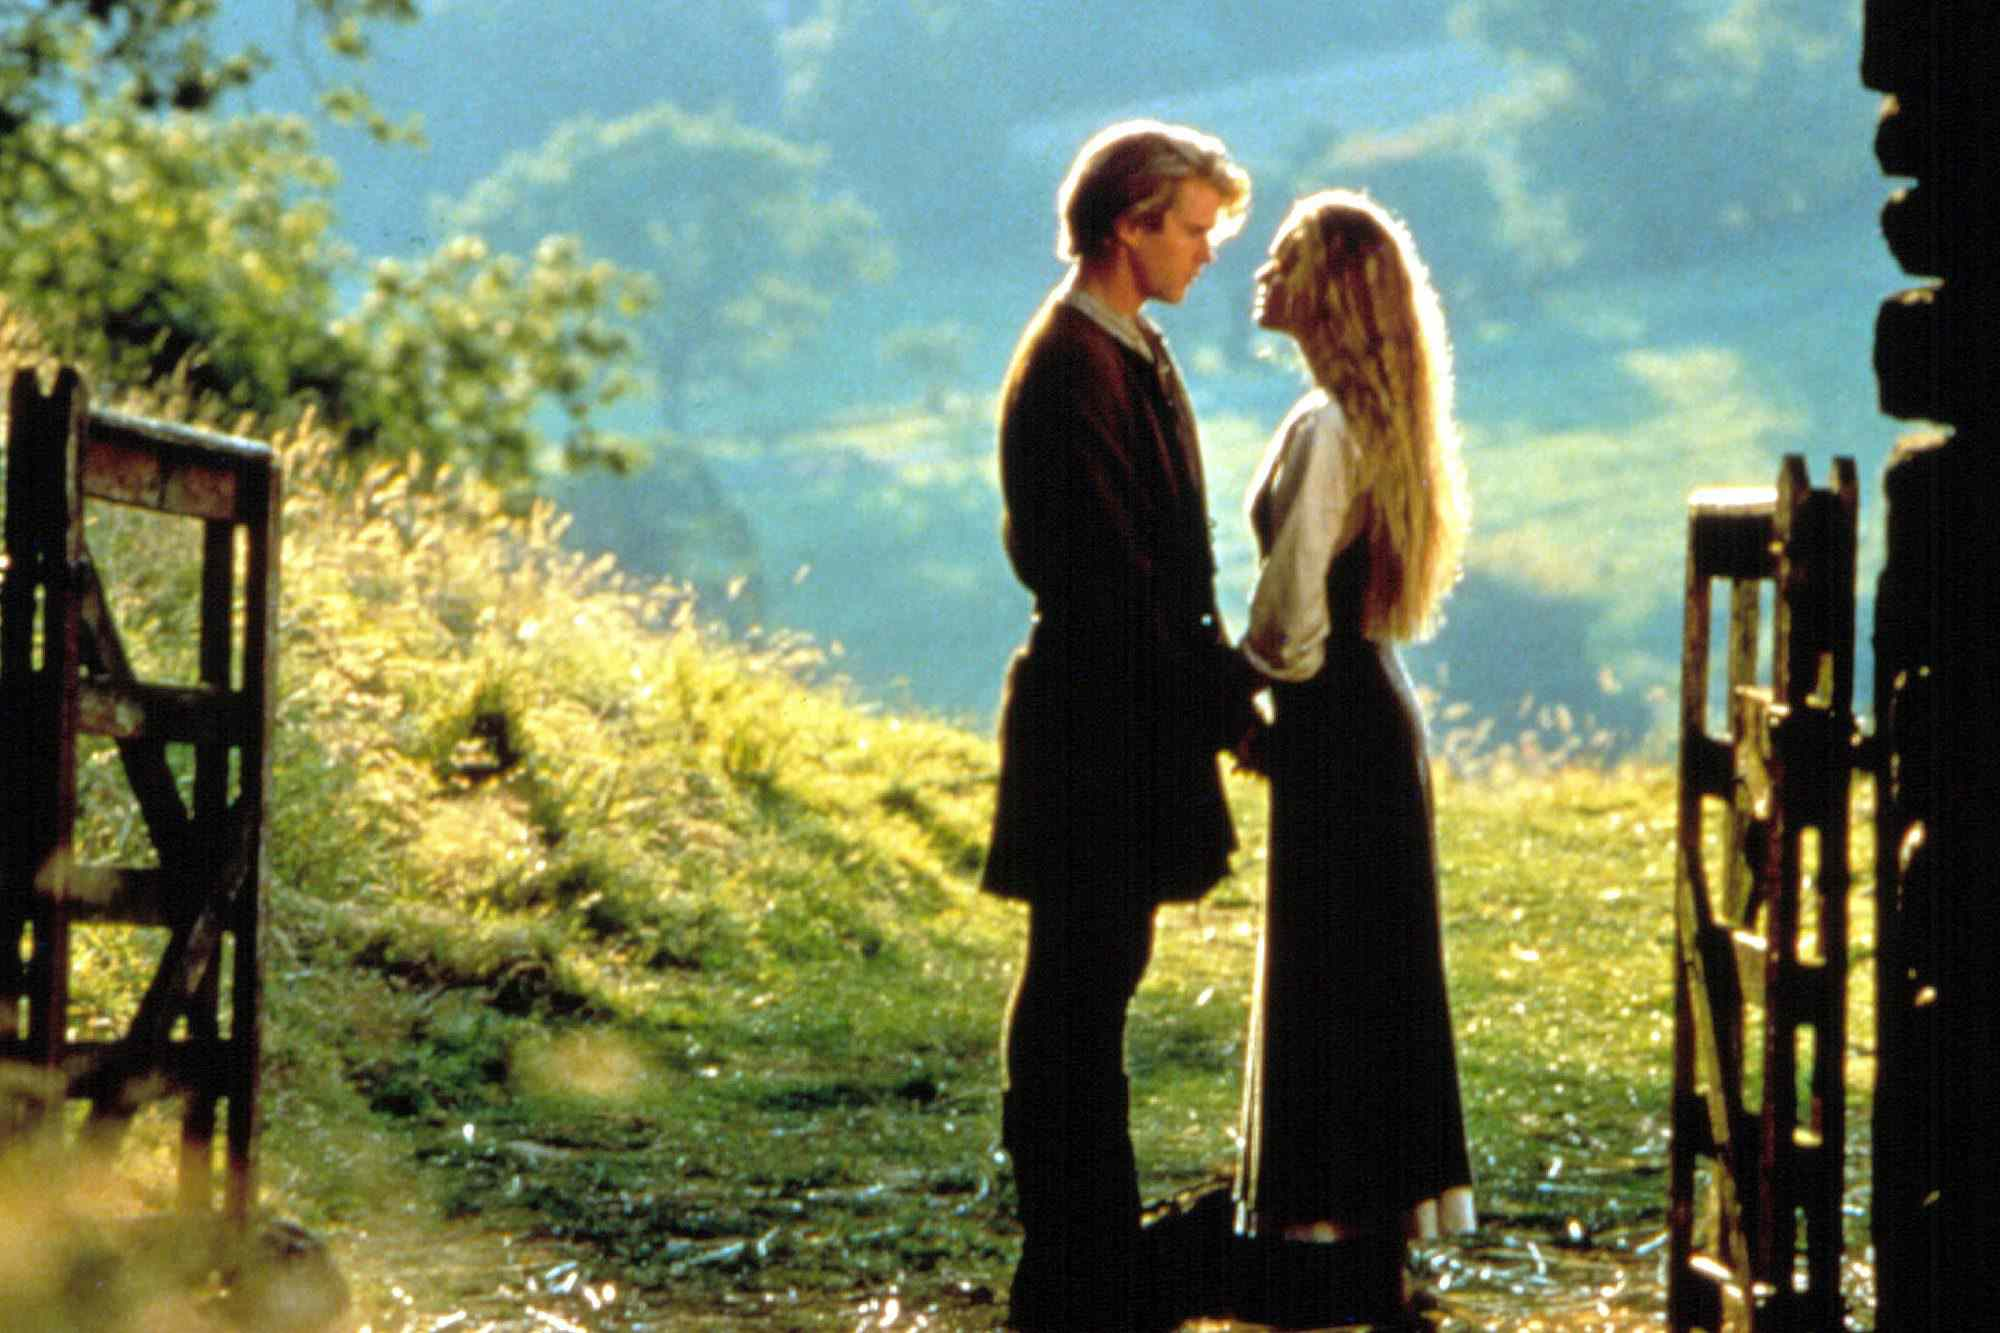 Cary Elwes and Robin Wright in The Princess Bride (1987)